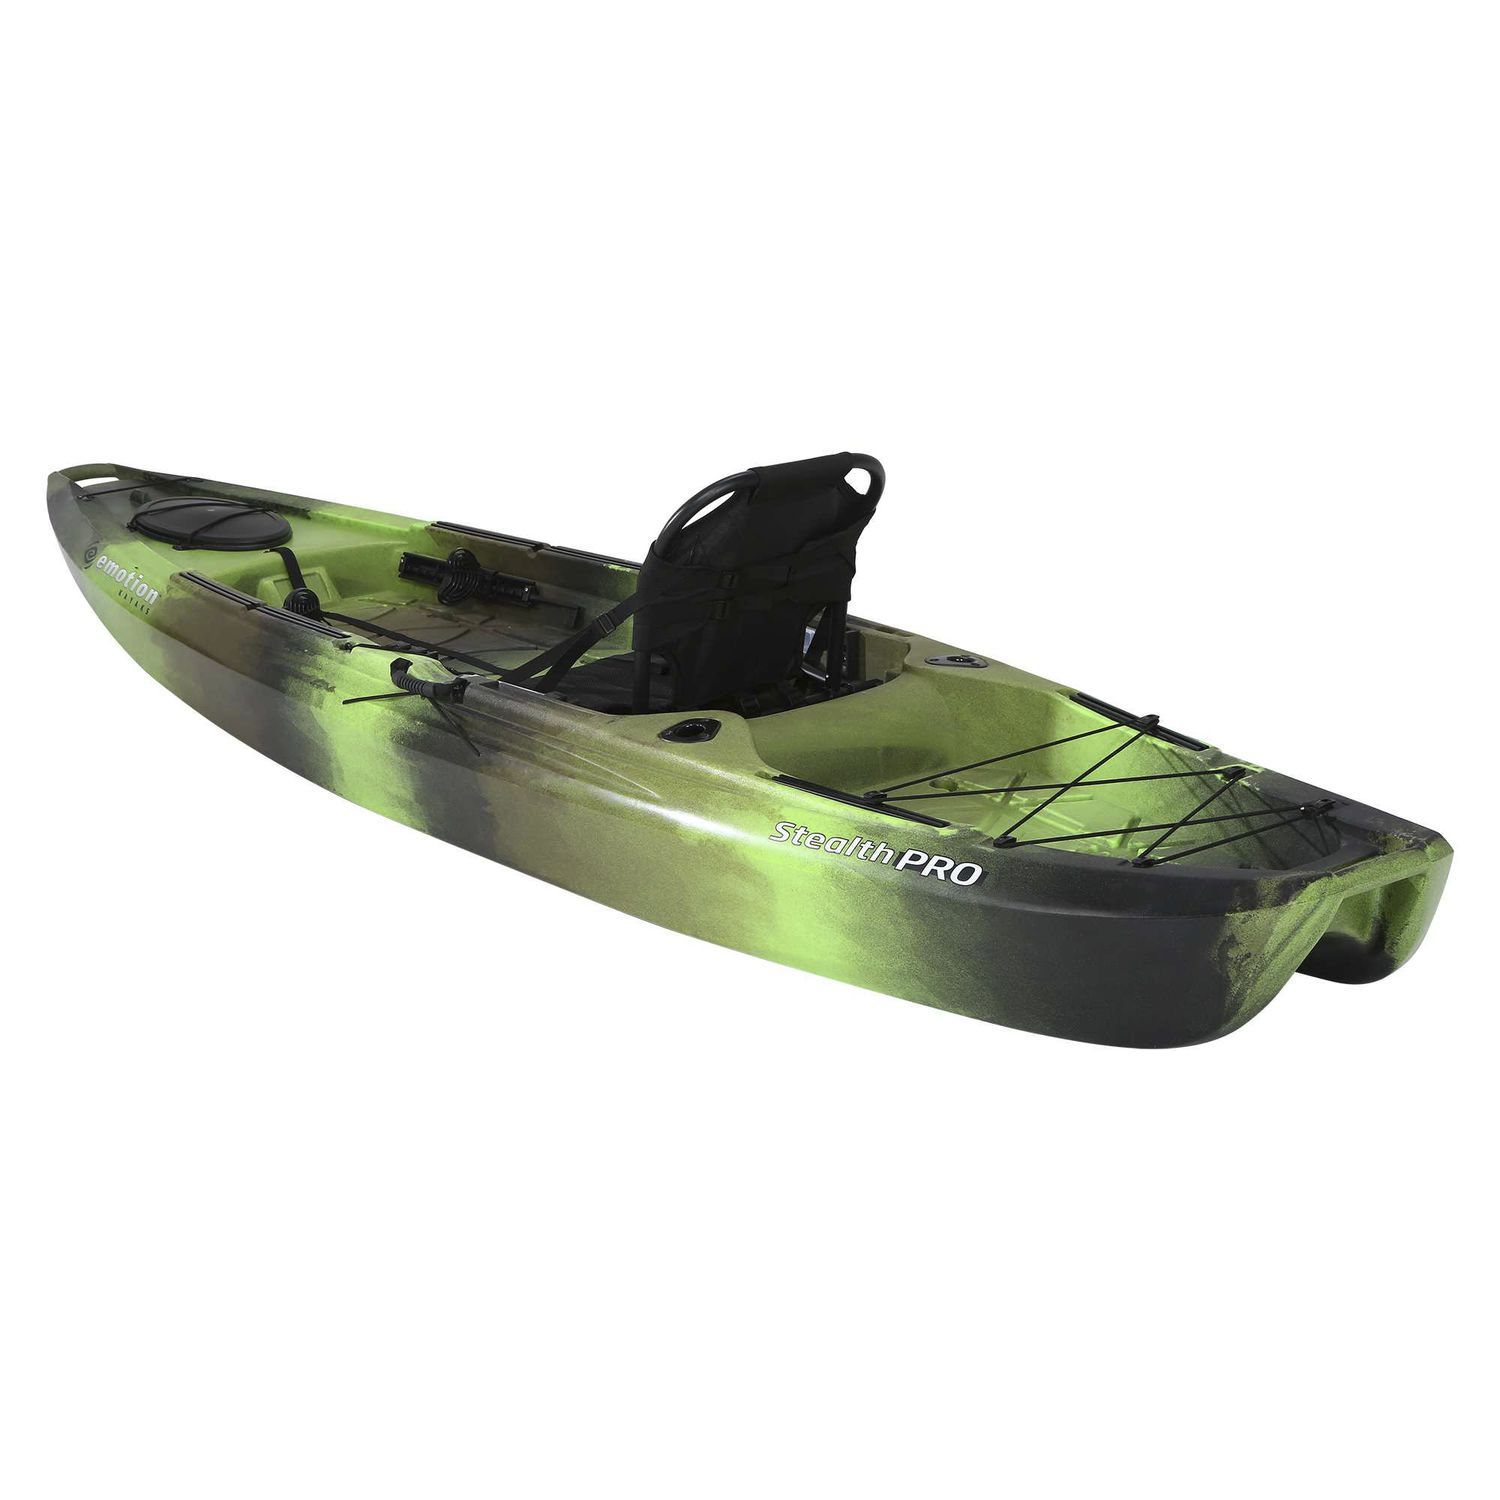 Sit On Top Kayak Rigid Surf Fishing Stealth Pro